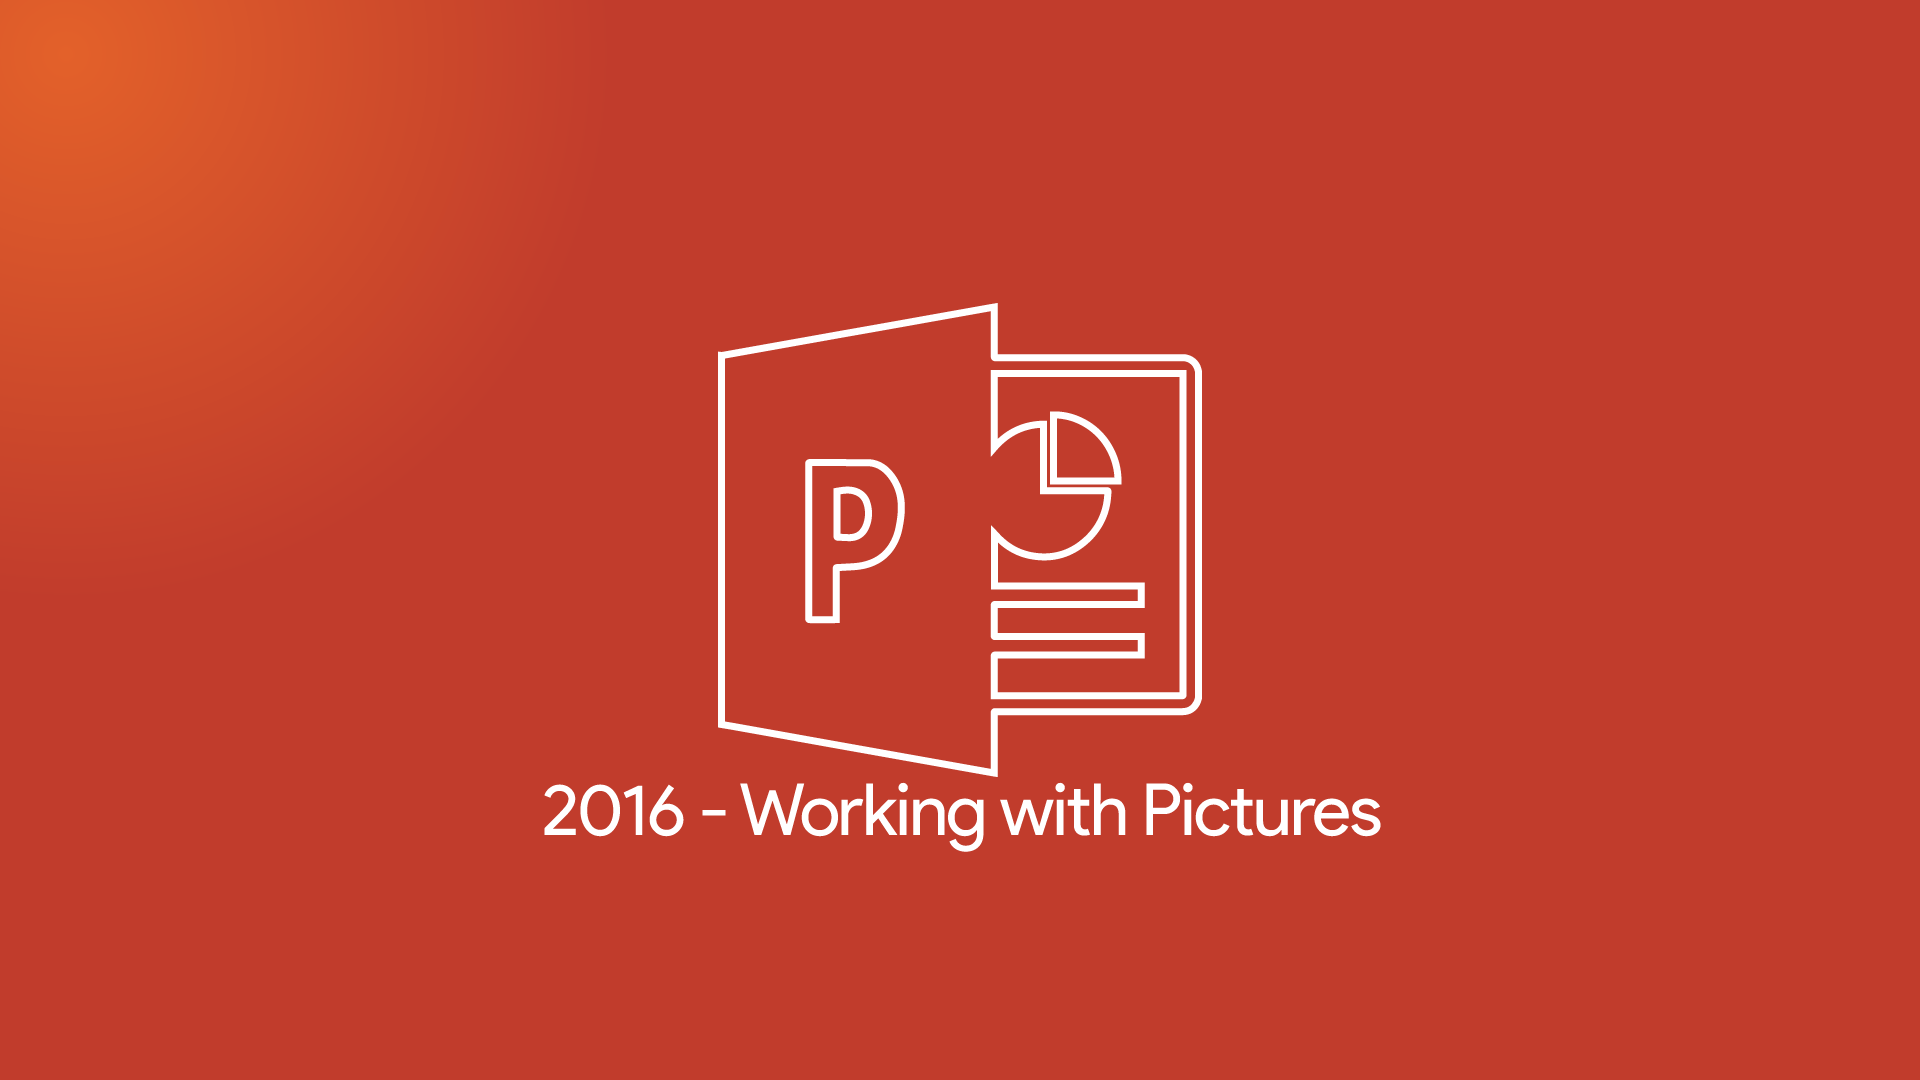 PowerPoint 2016 - Working with Pictures